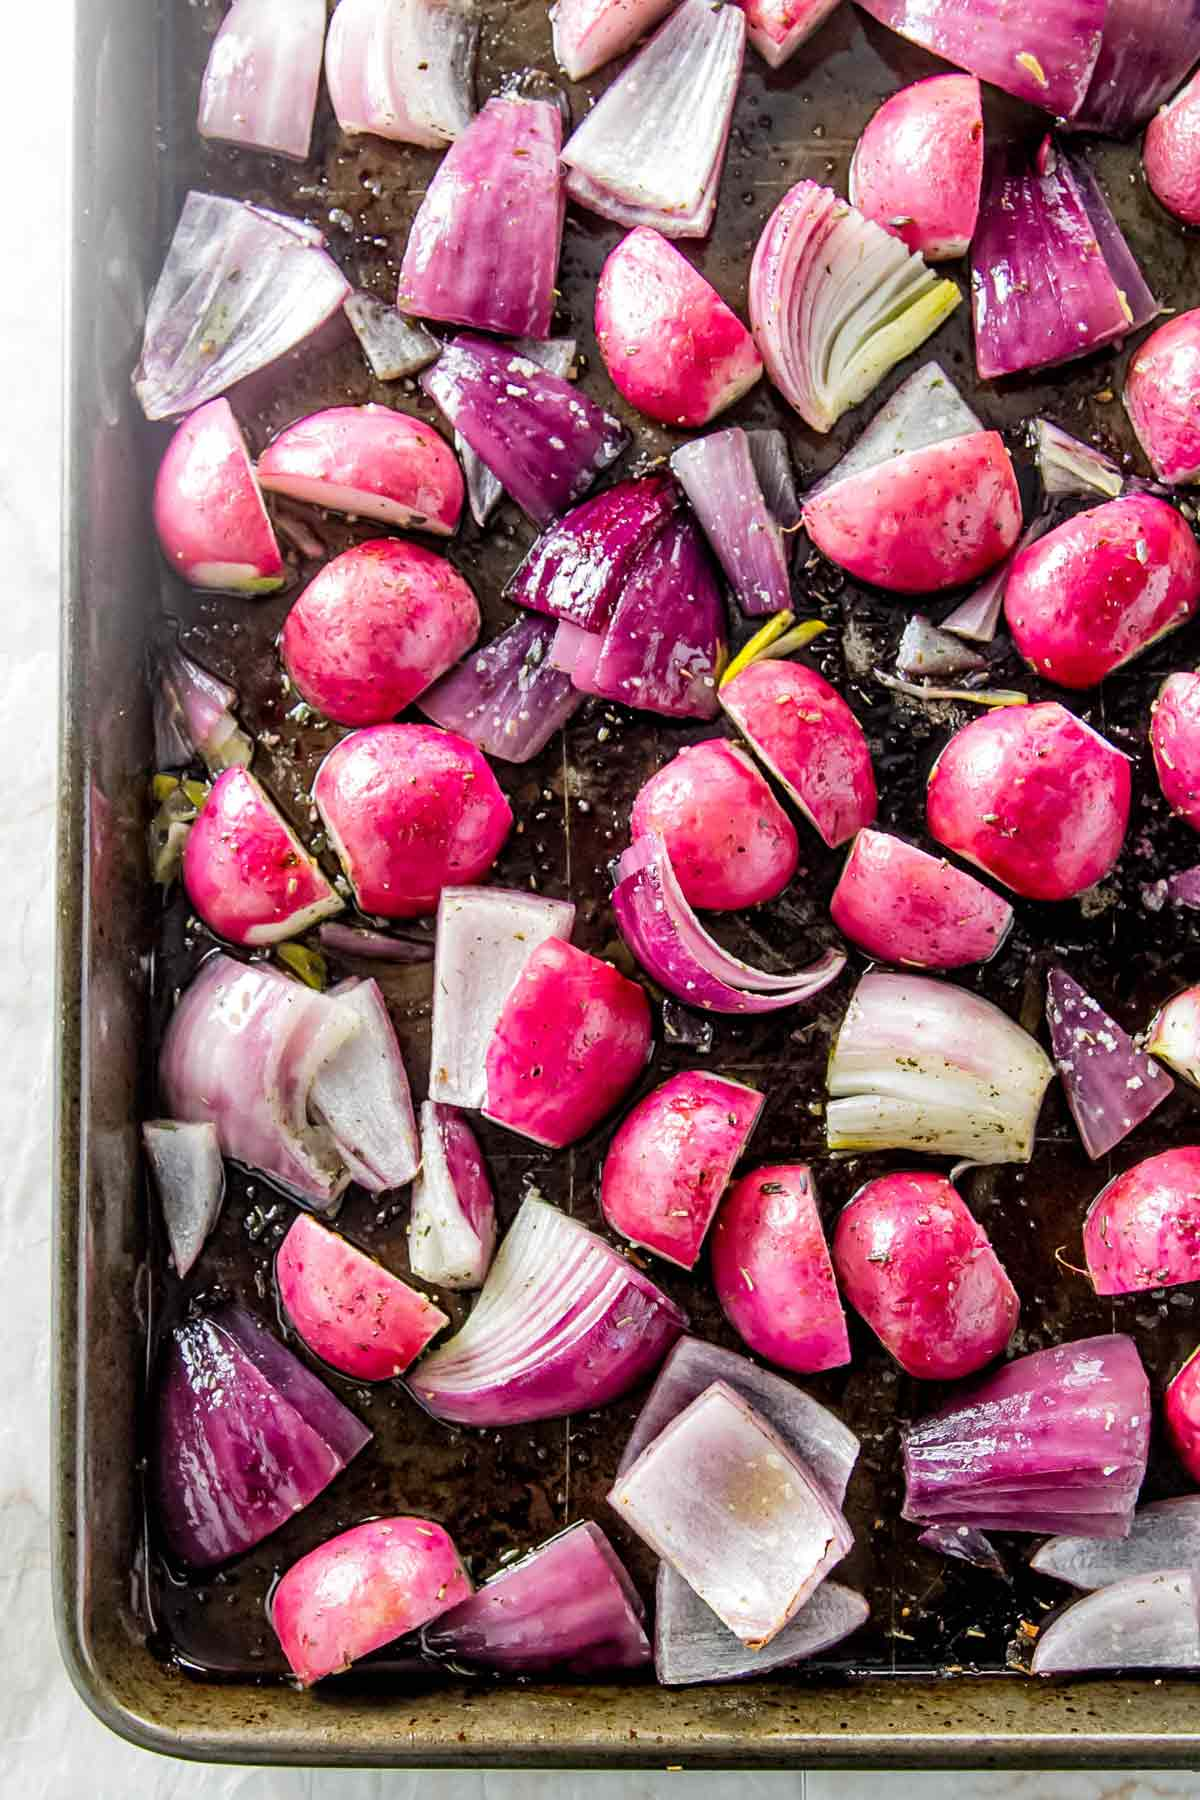 radishes and onions on a sheet pan after roasting.